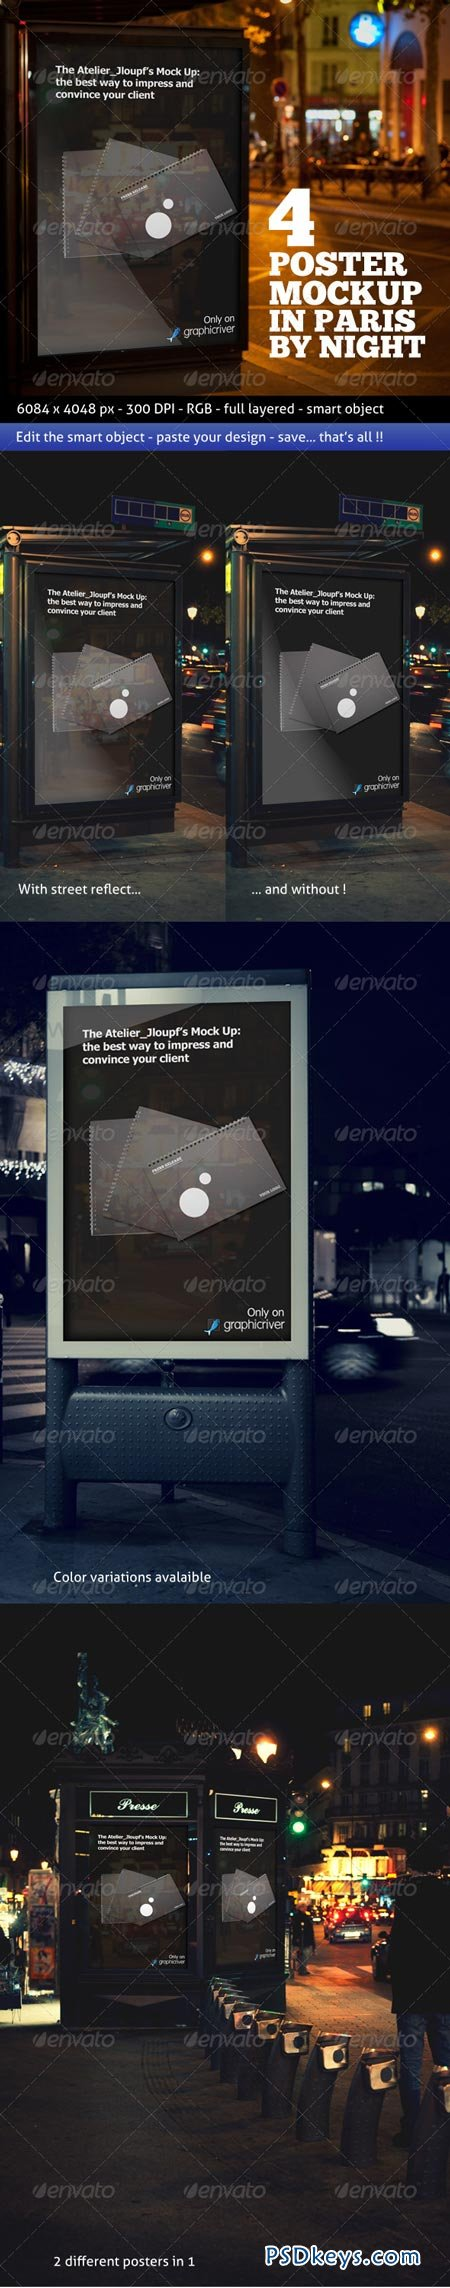 Photorealistic Poster Mockup In Paris By Night 979568